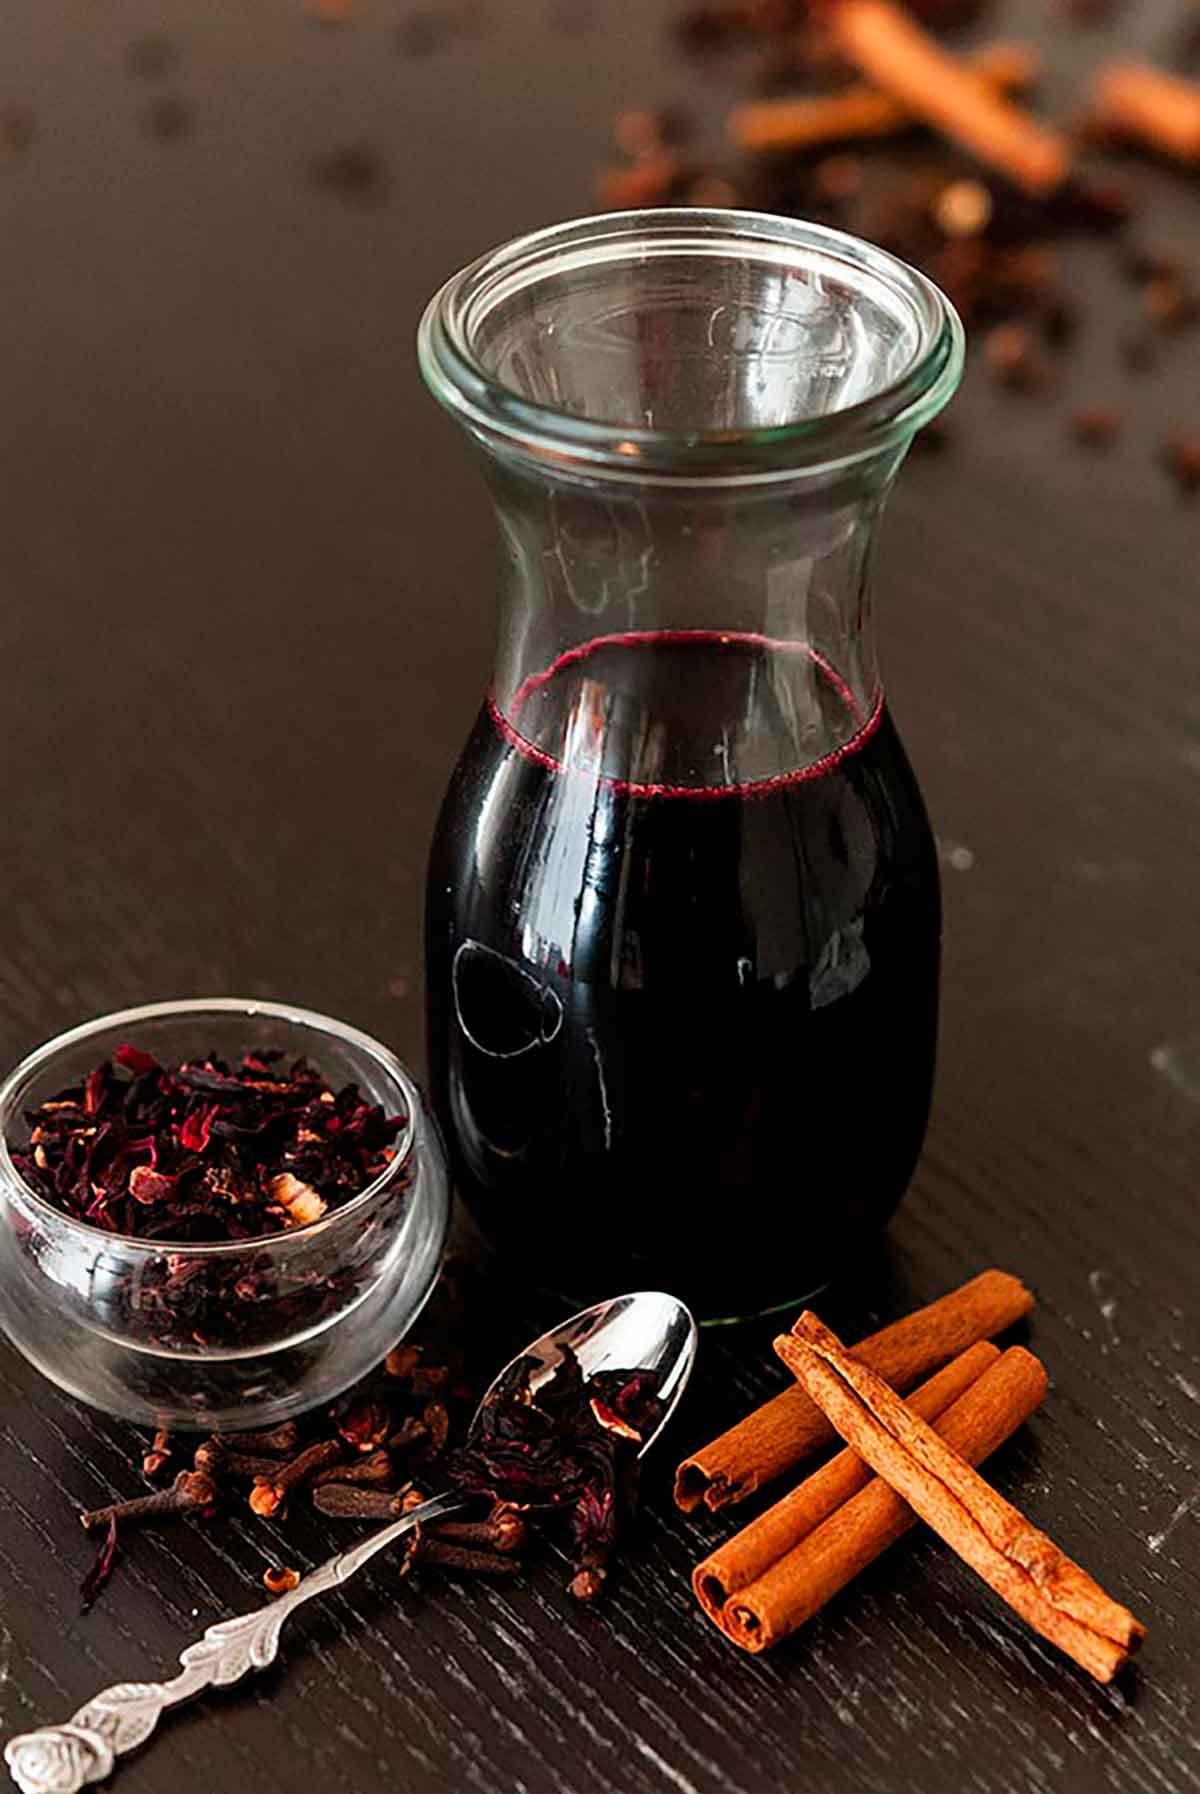 A bottle of spiced hibiscus syrup on a table surrounded by a few cinnamon sticks and a small bowl of hibiscus flowers.